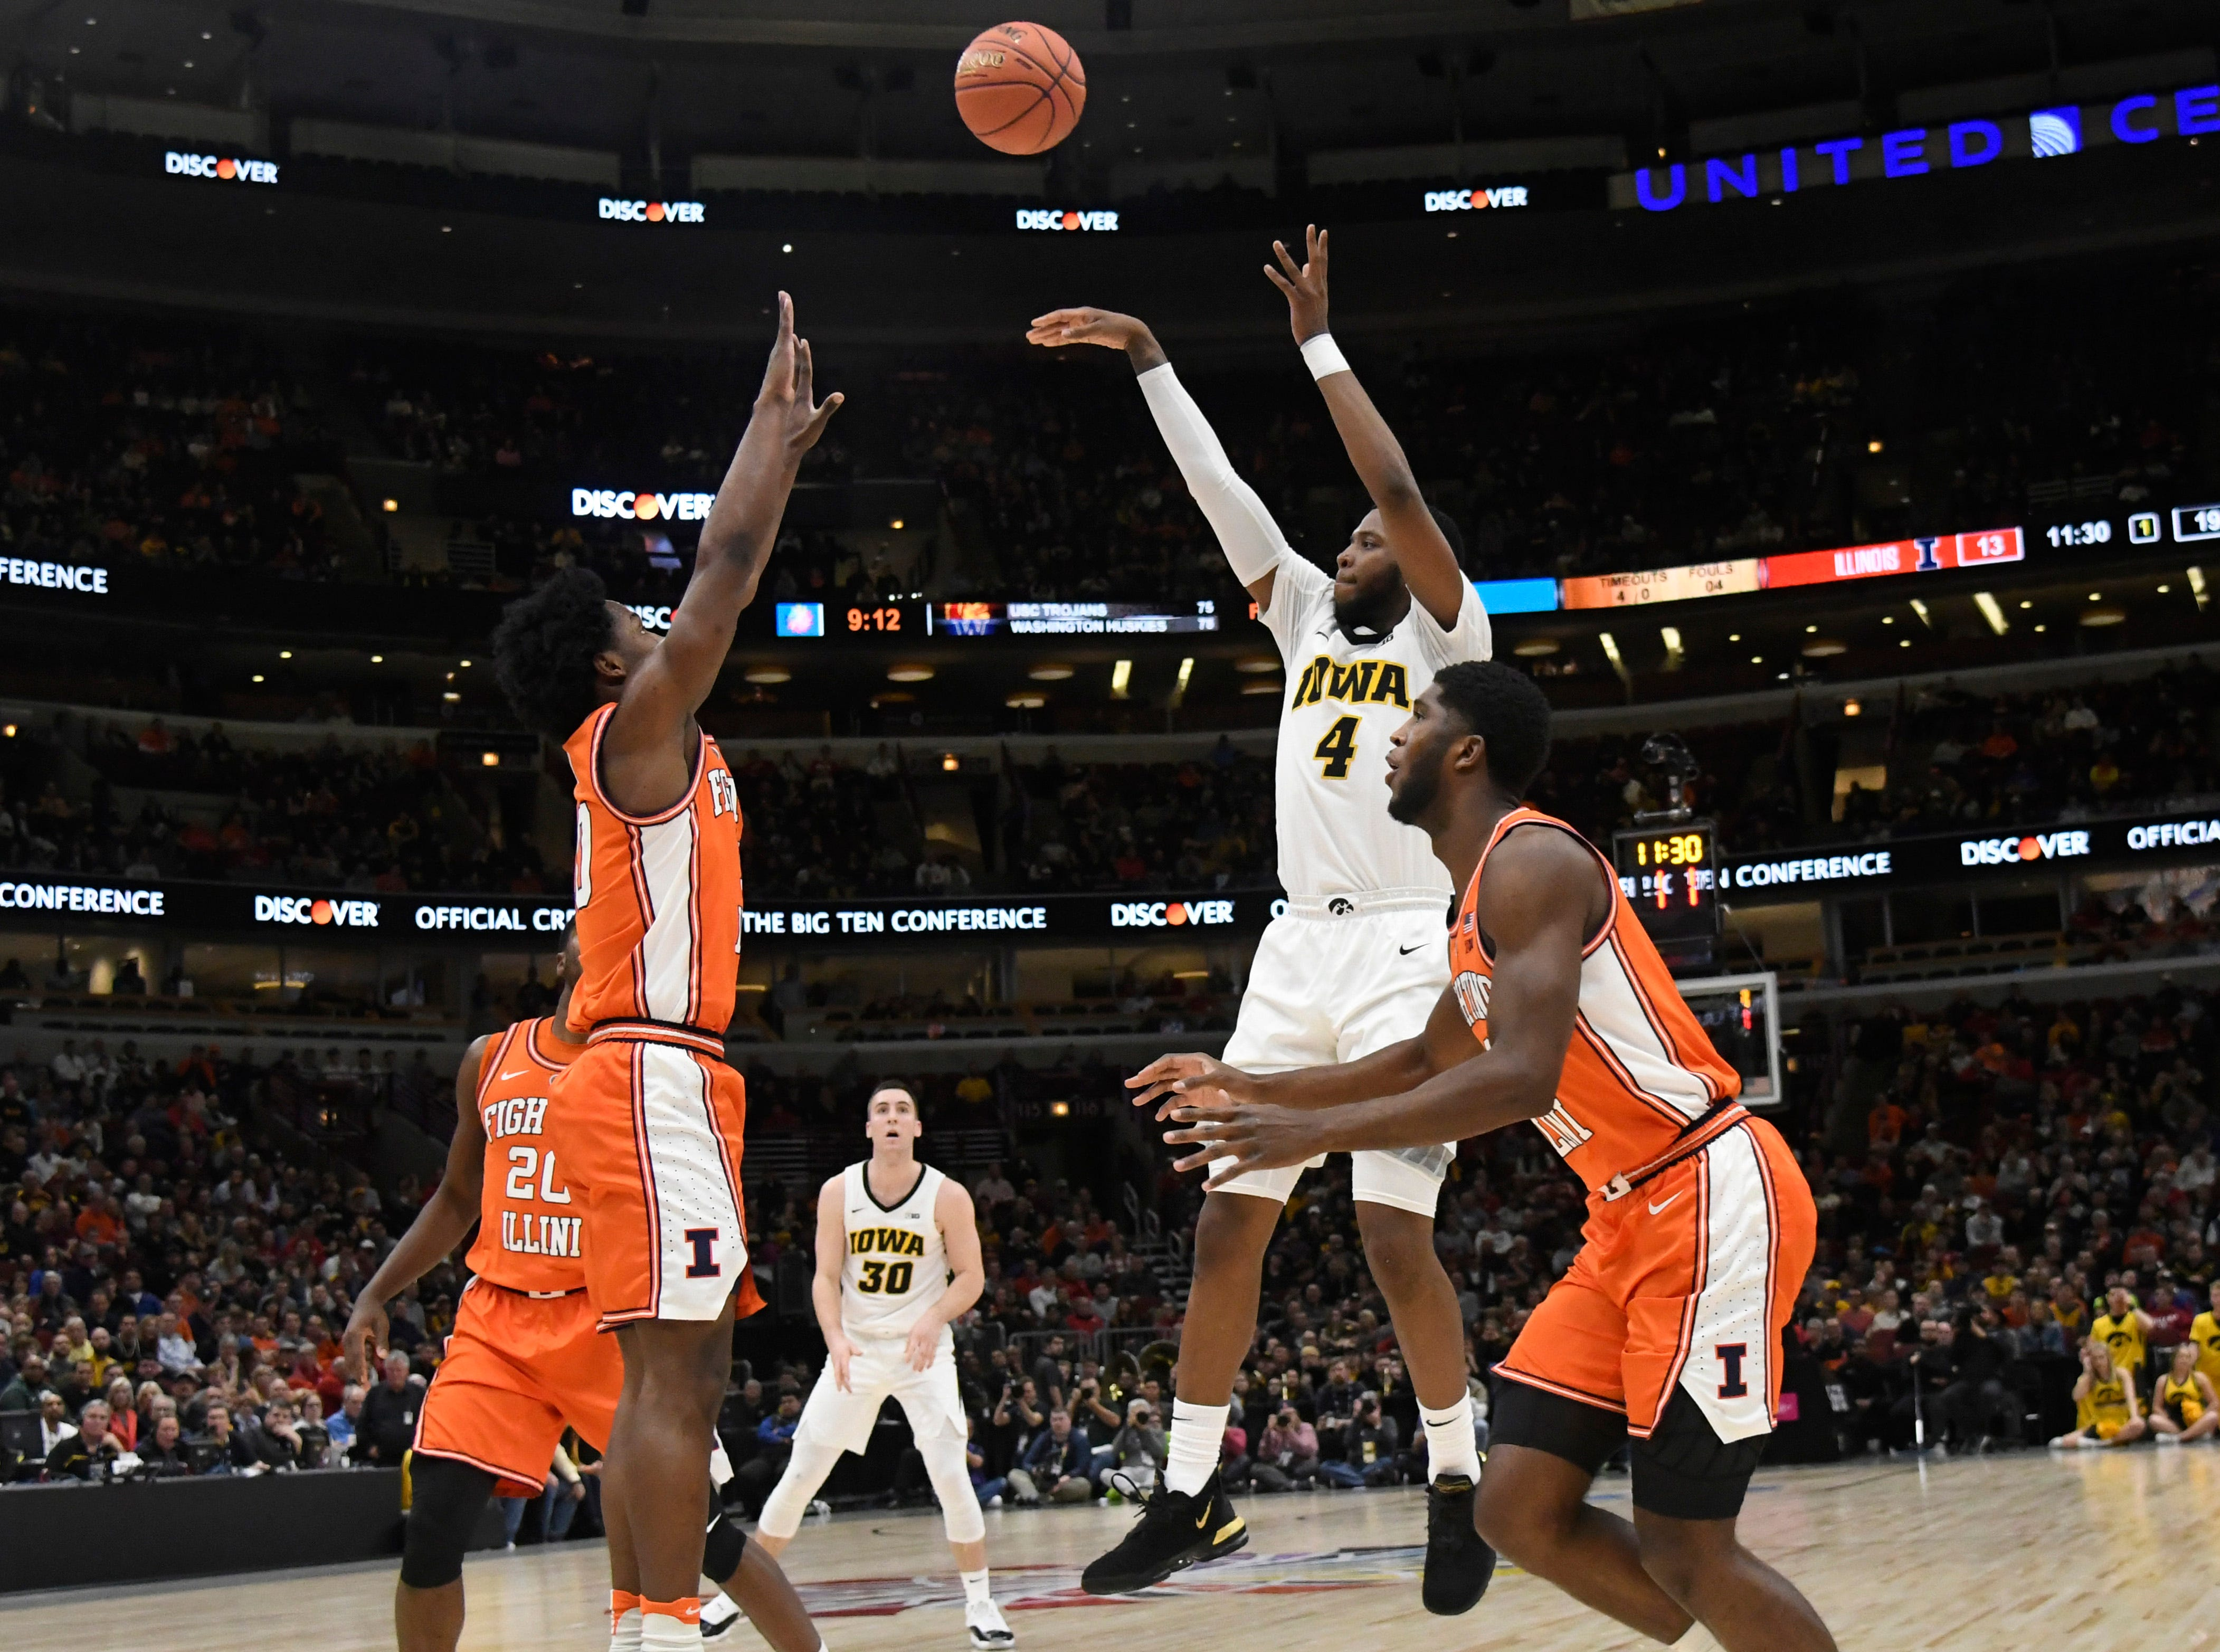 Mar 14, 2019; Chicago, IL, USA; Iowa Hawkeyes guard Isaiah Moss (4) shoots against the Illinois Fighting Illini during the first half in the Big Ten conference tournament at United Center. Mandatory Credit: David Banks-USA TODAY Sports